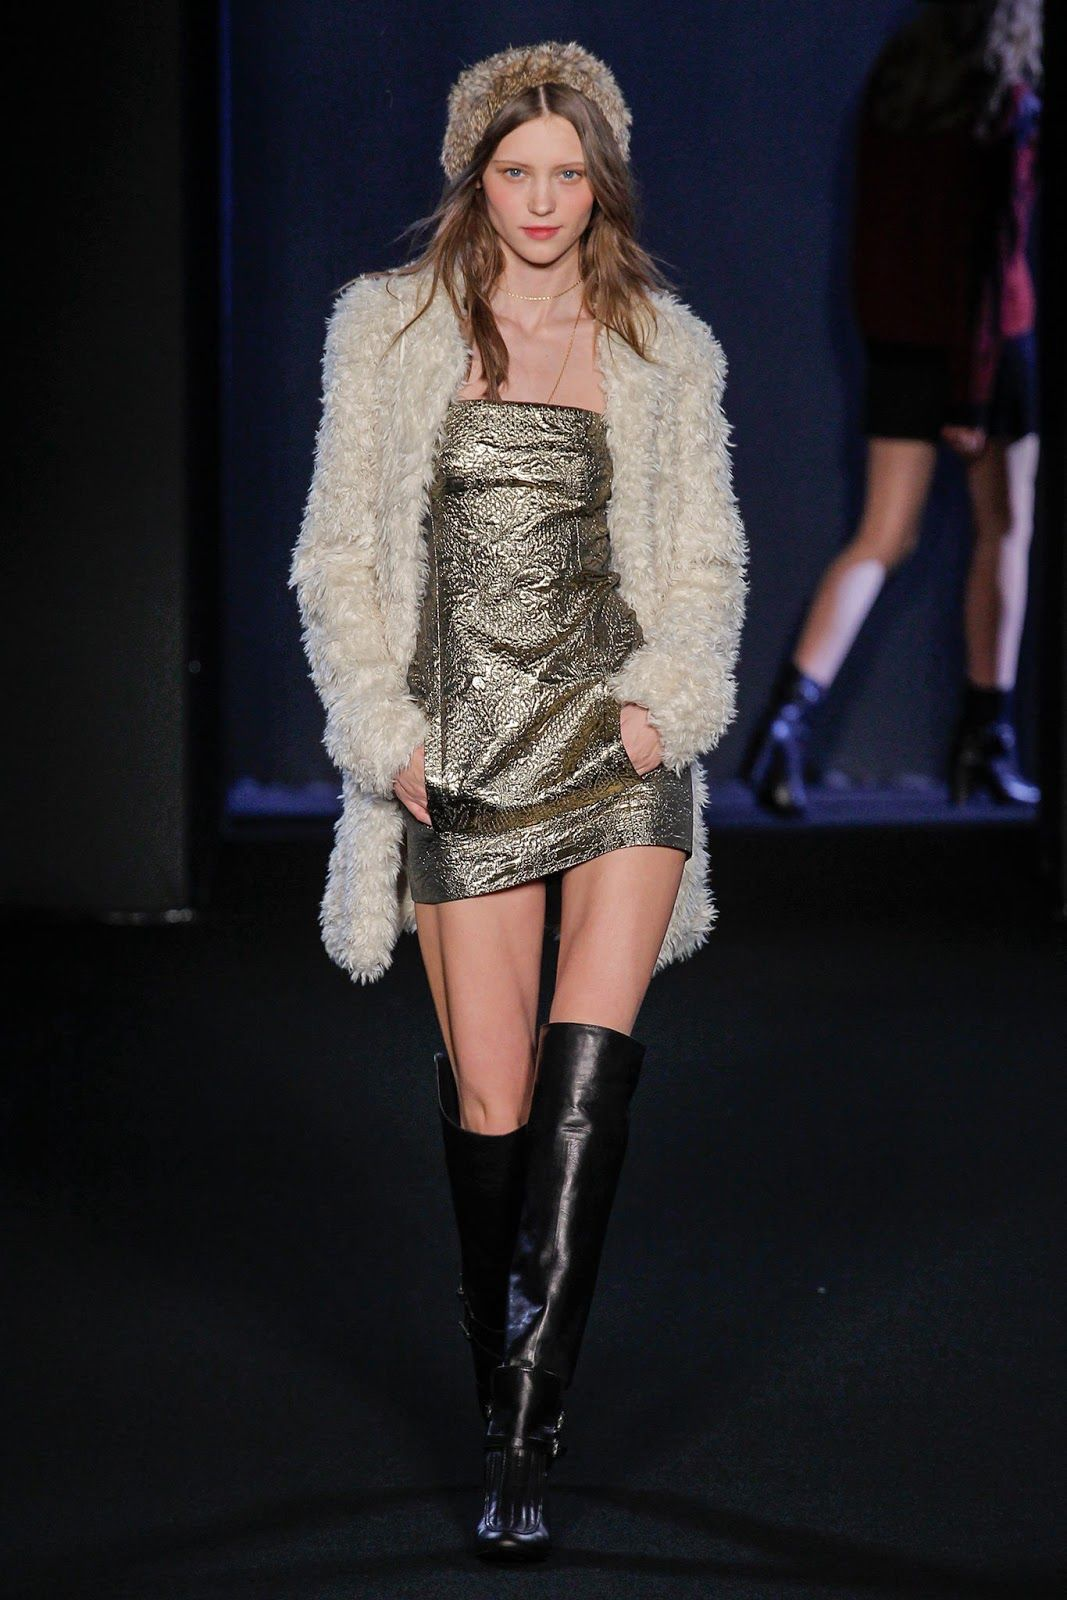 Zadig & Voltaire Fall/Winter 2013 collection